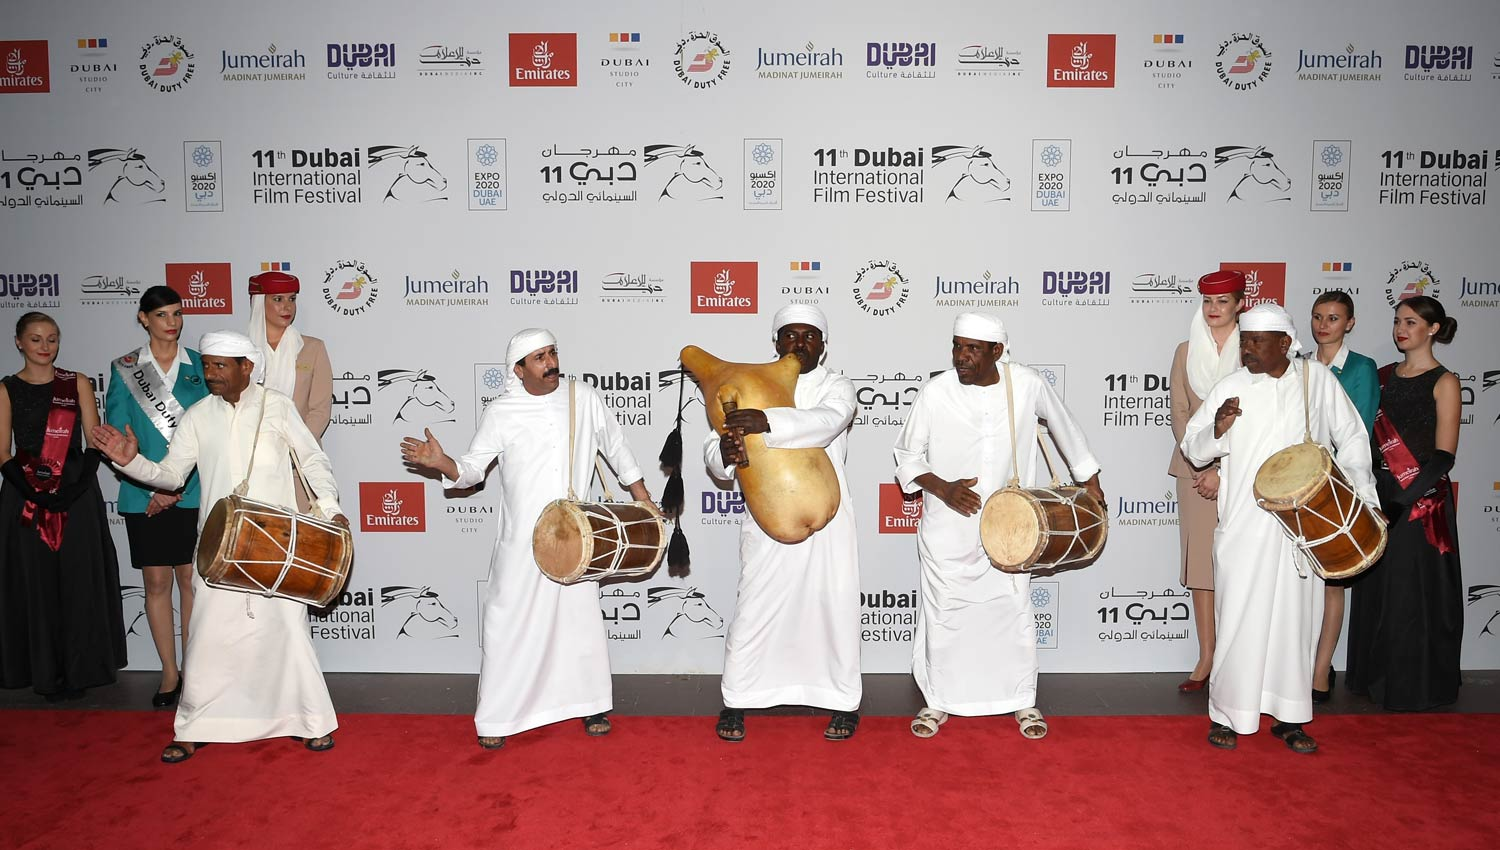 Emirati traditional musicians perform on the red carpet during the opening ceremony of the Dubai International Film Festival /Courtesy of Dubai International Film Festival.